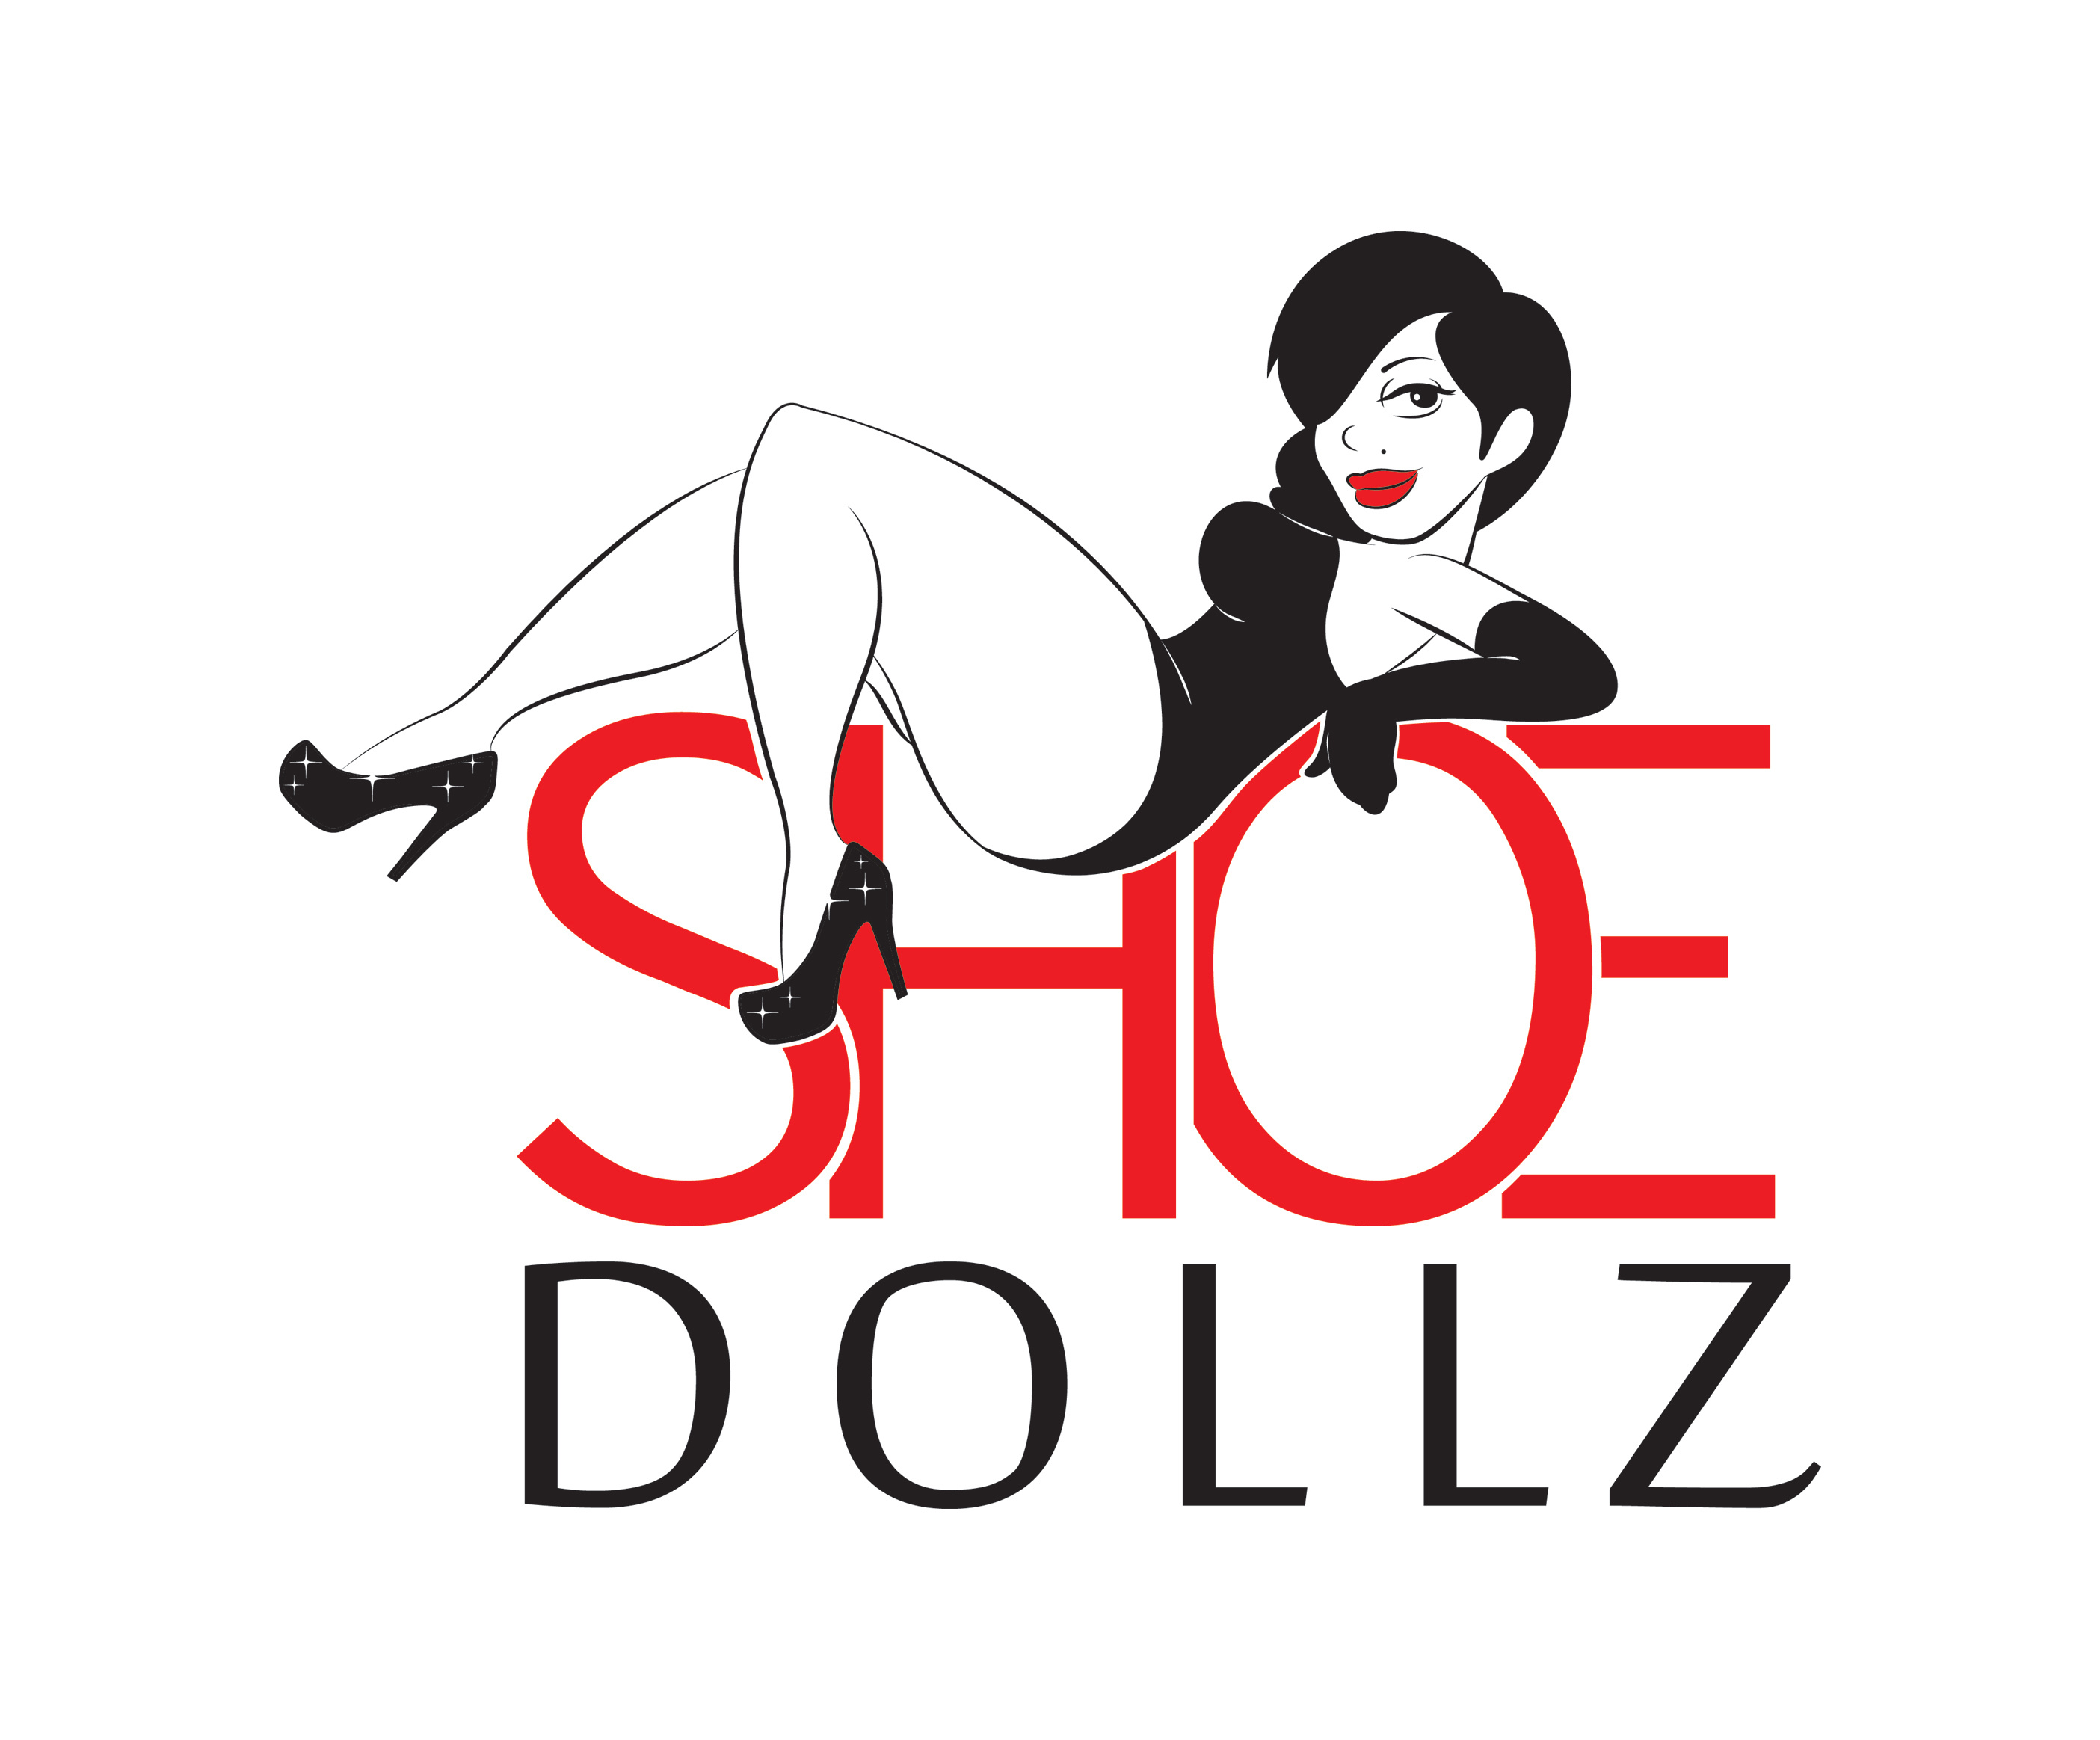 Shoe Dollz Logo